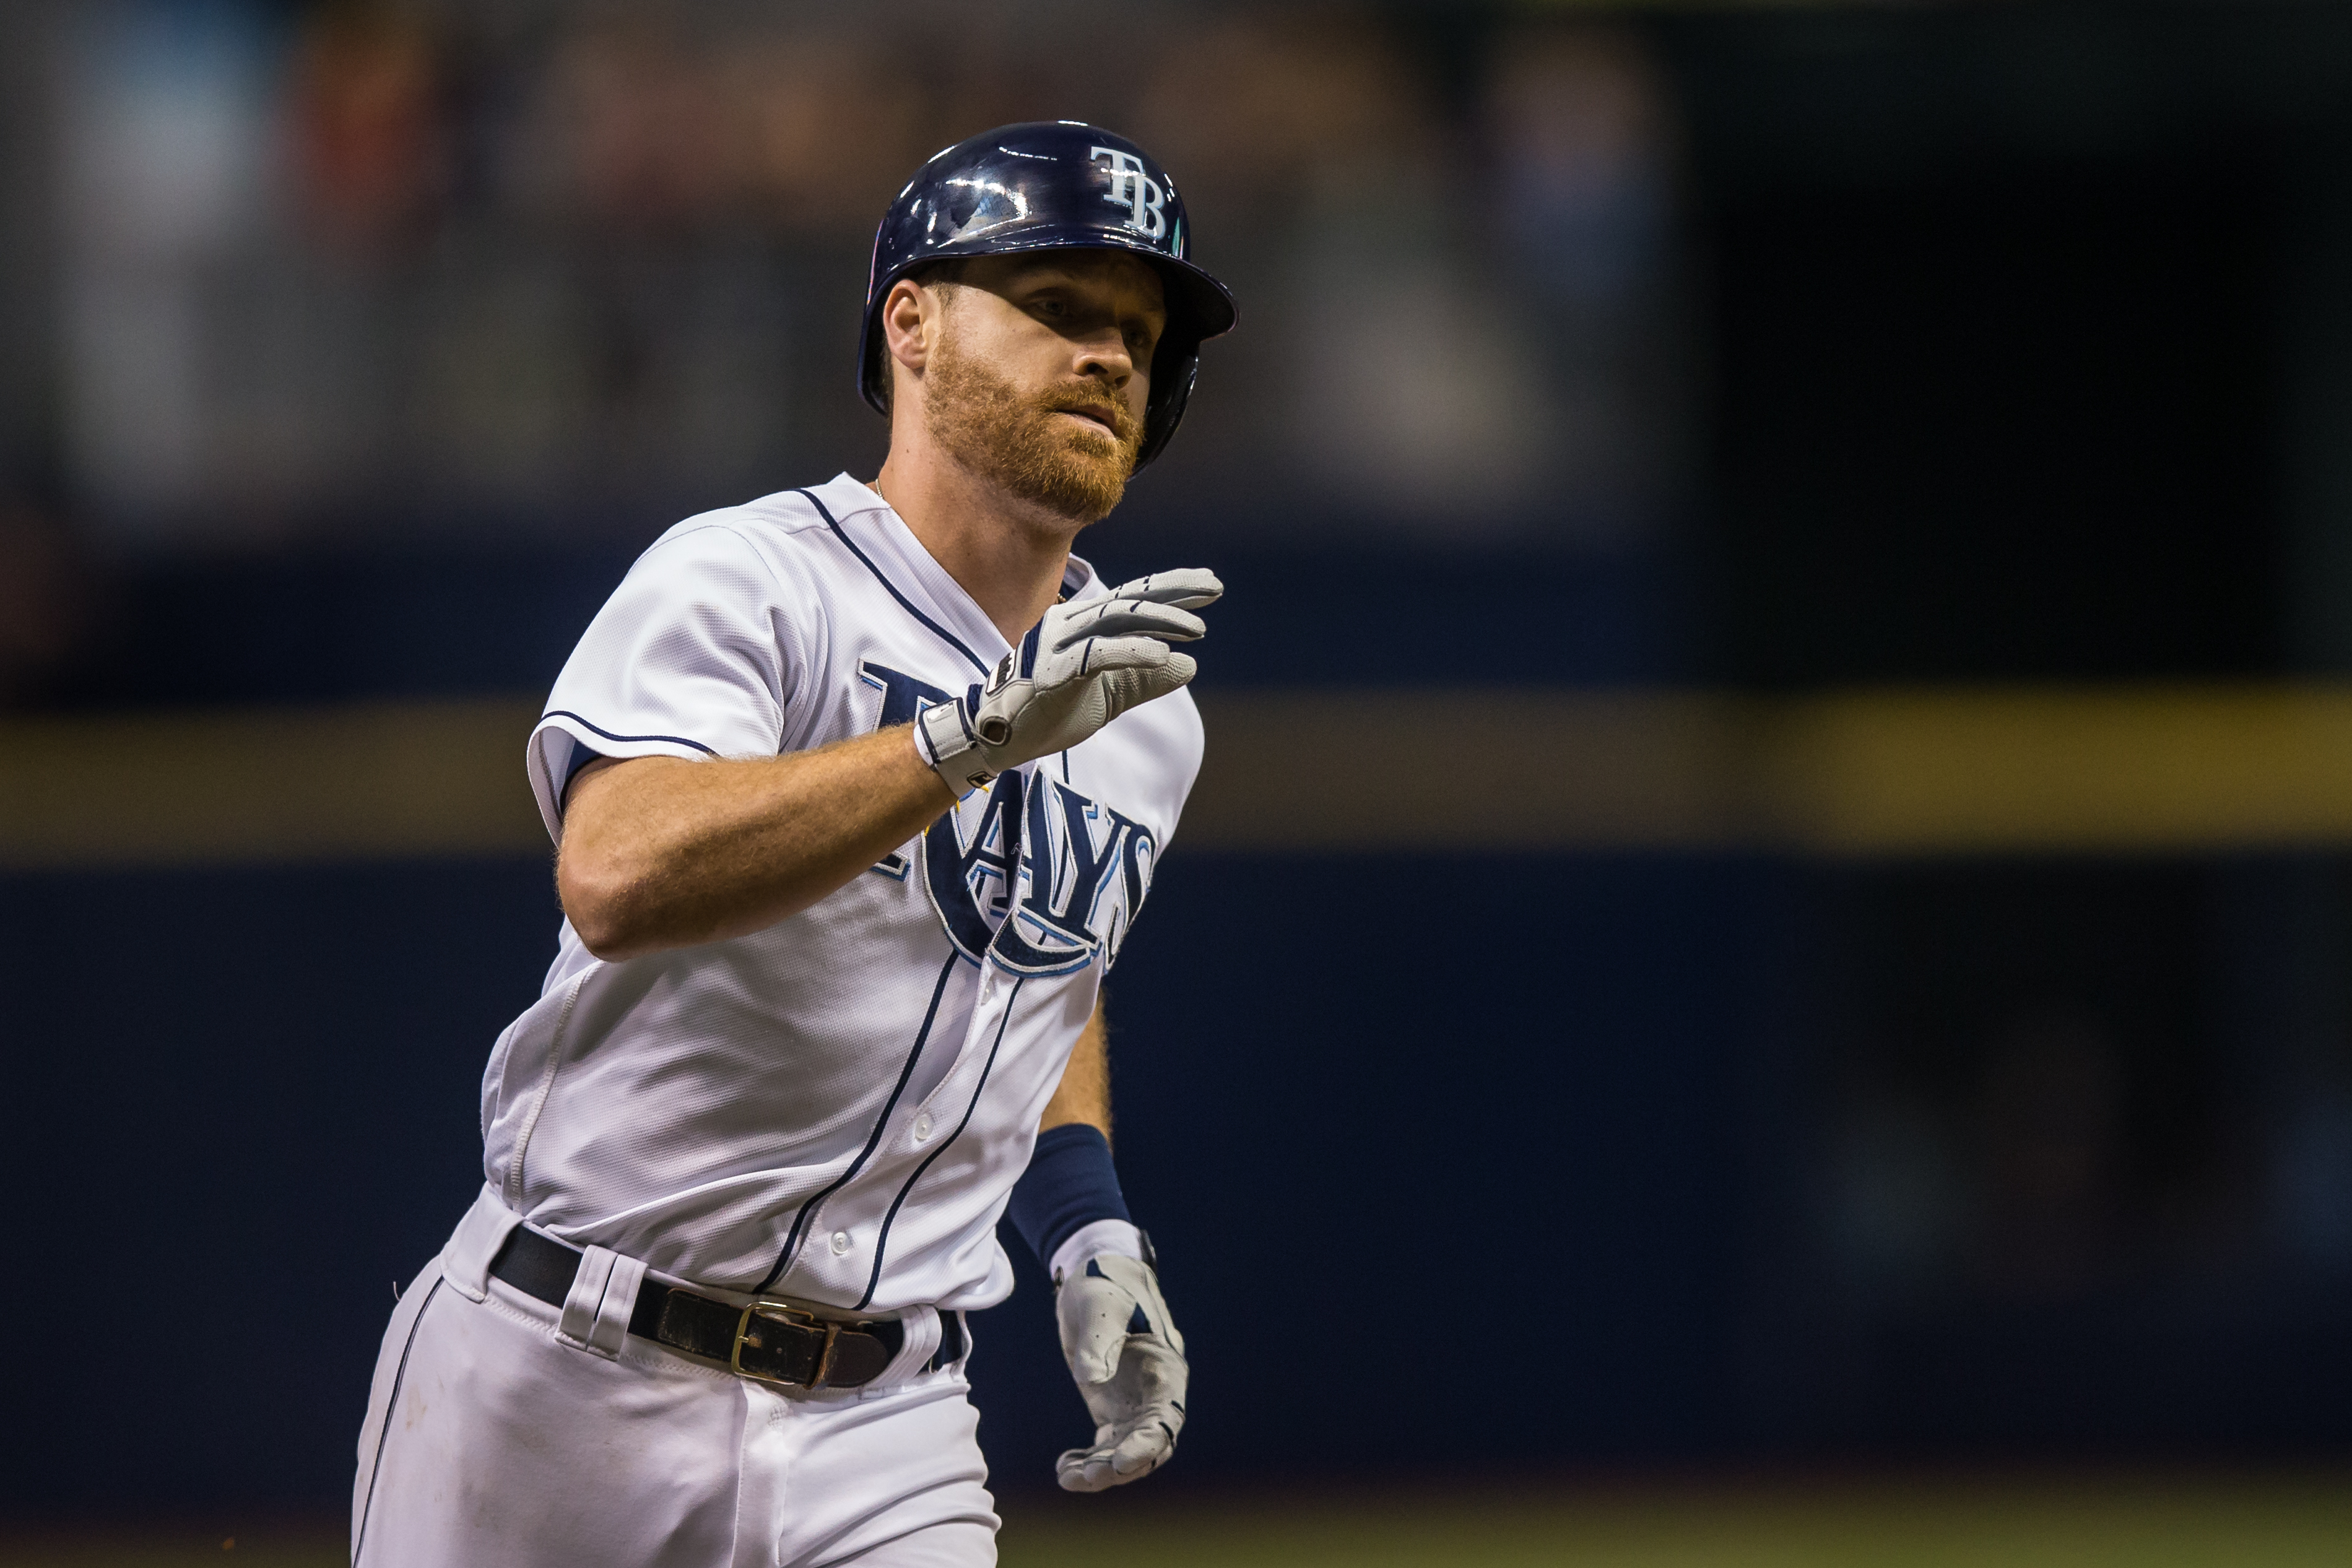 Forsythe has hit safely in eight of his last nine games./TRAVIS PENDERGRASS